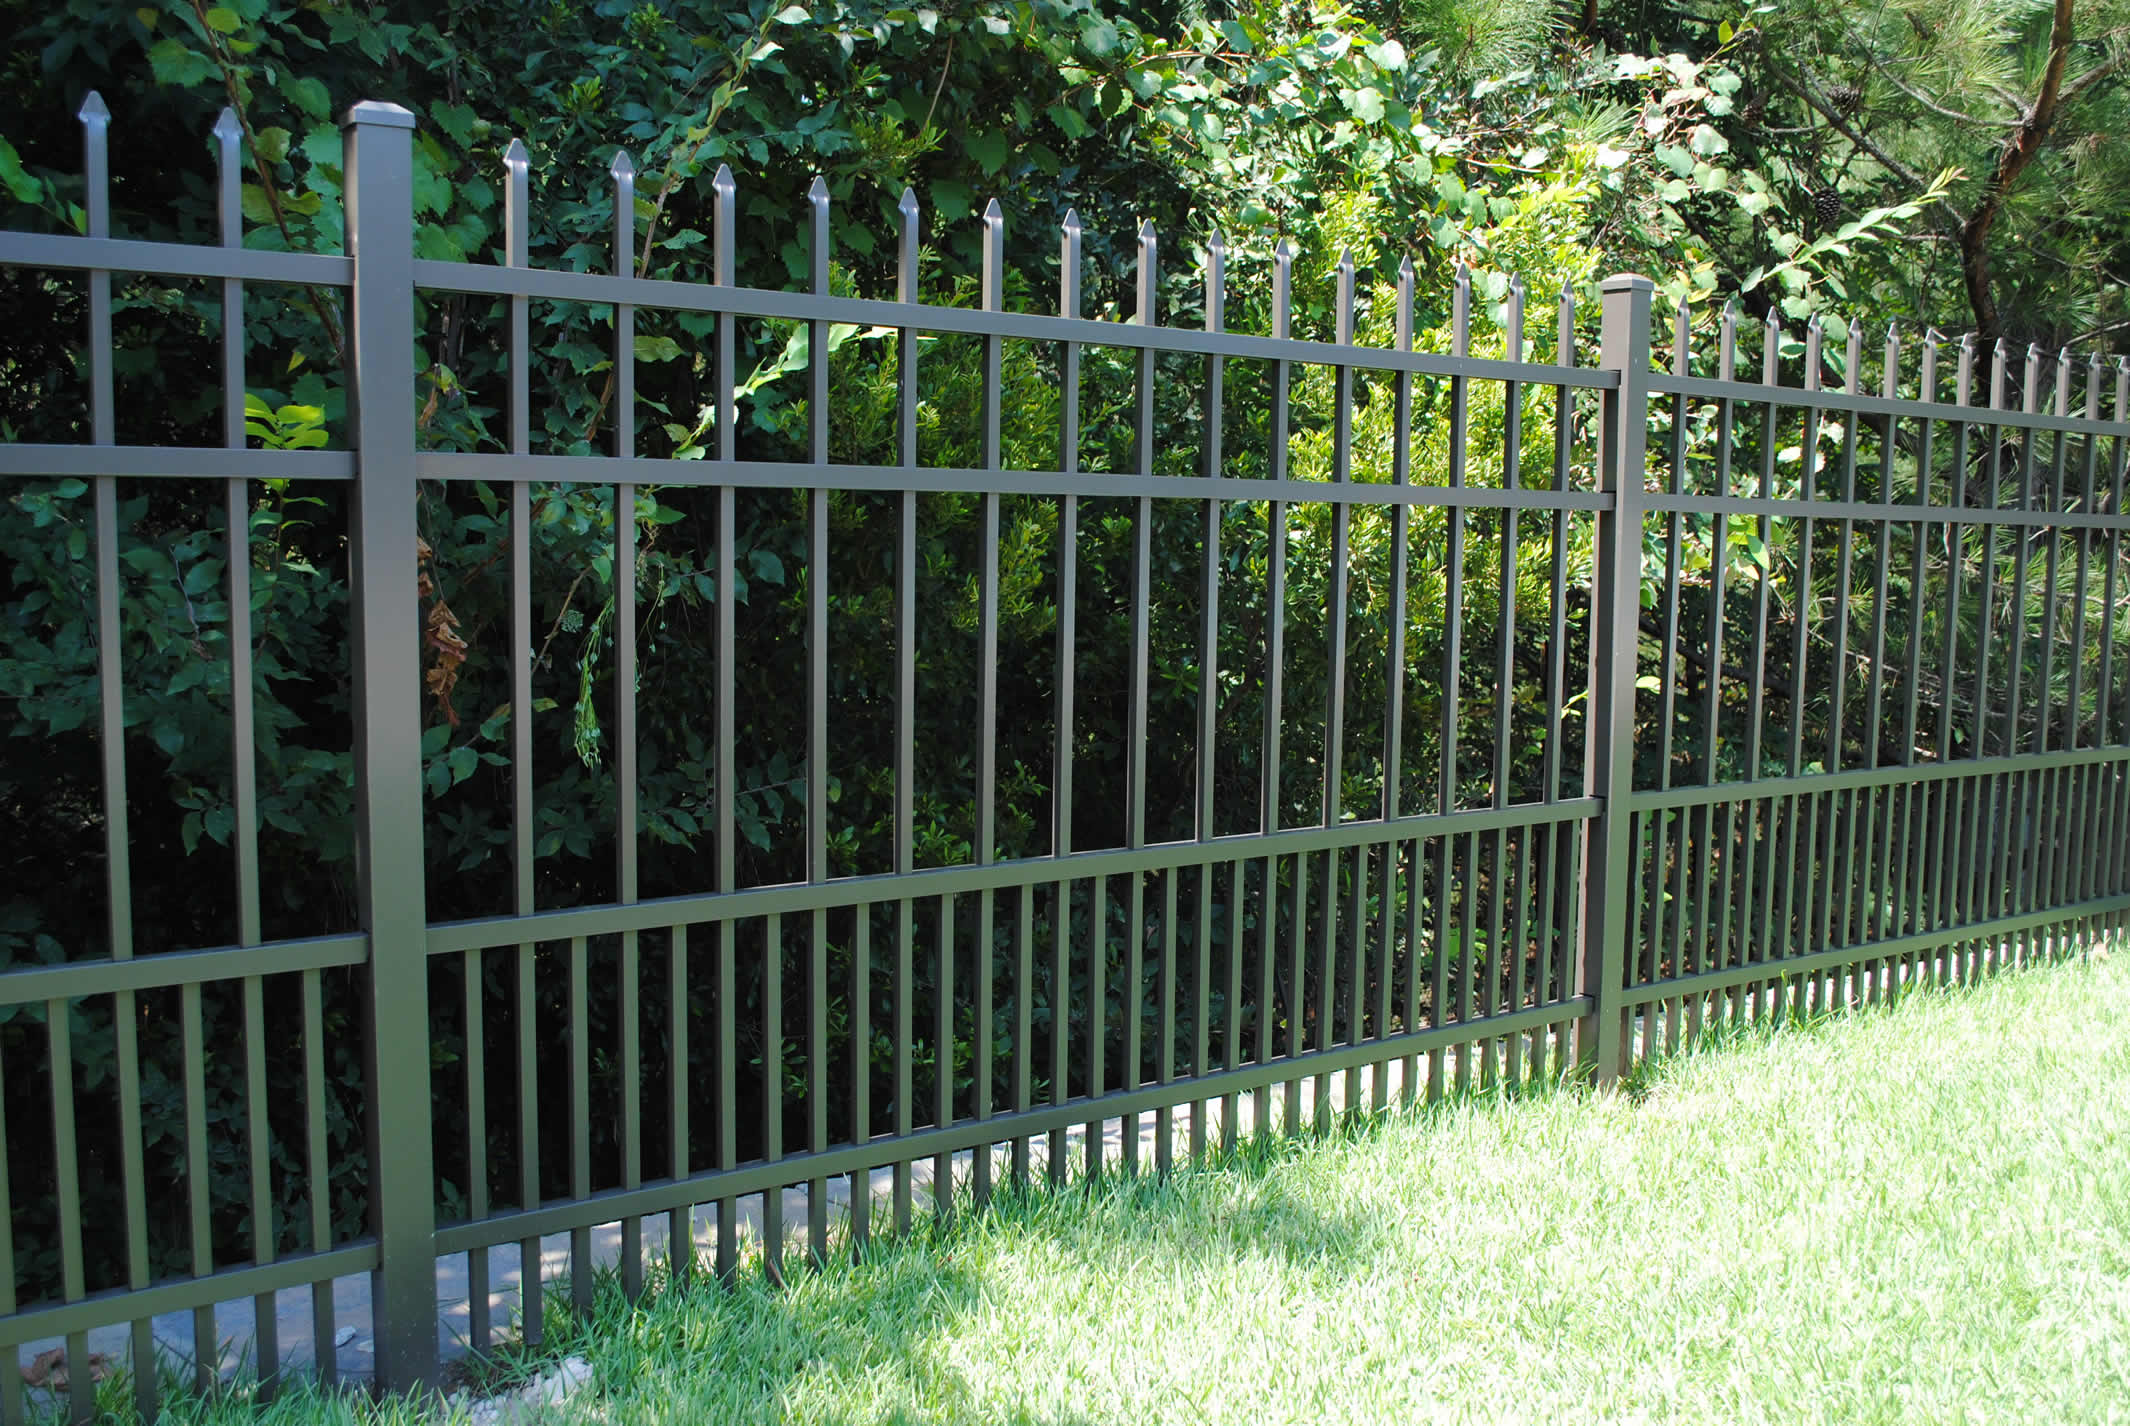 Commercial Ornamental Fence Birmingham Al All Steel Fence